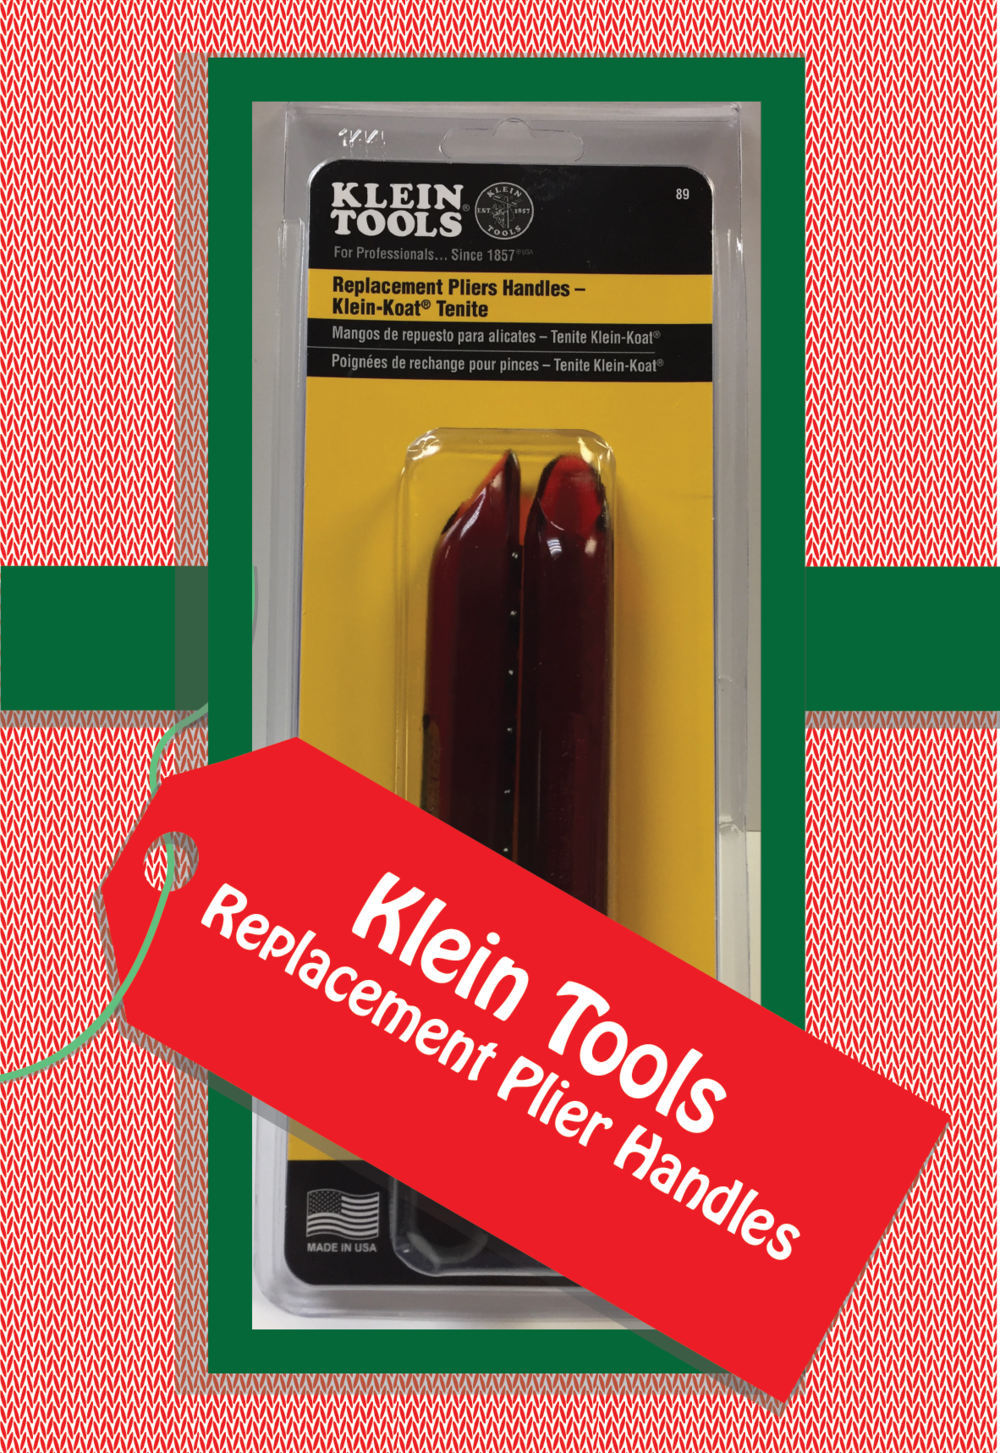 Replacement Plier Handles by Klein Tools